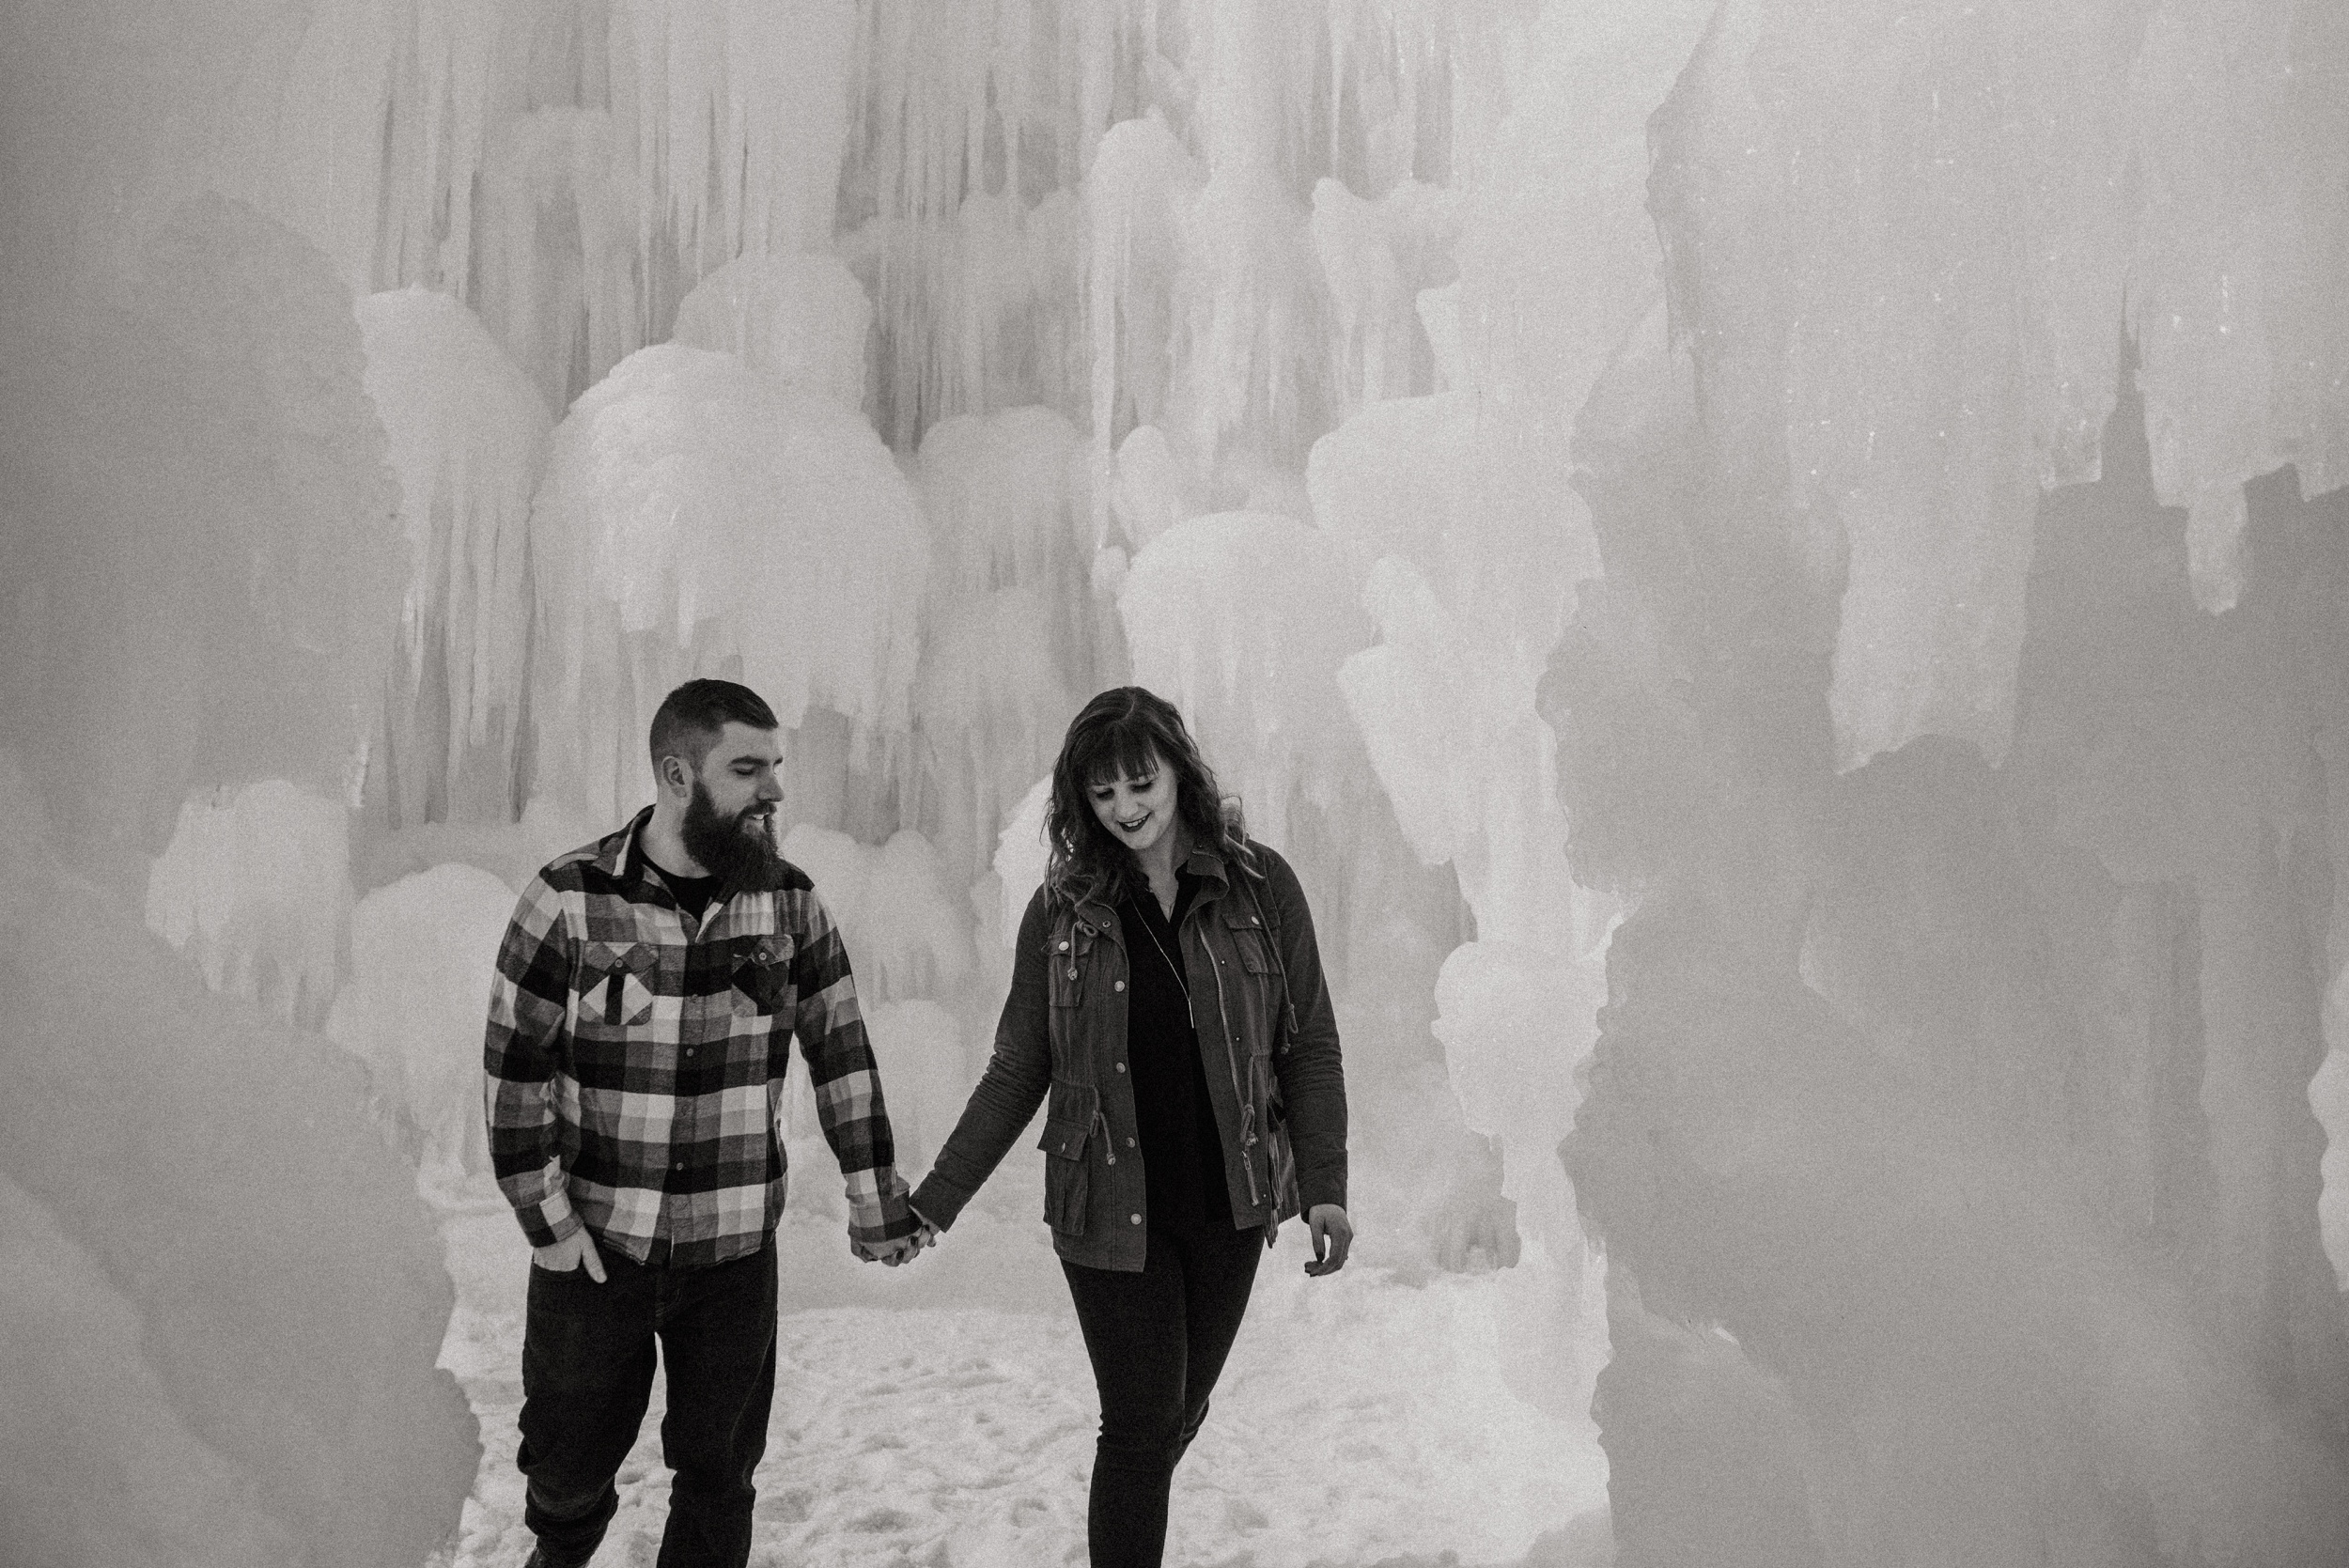 ice-castles-nh-engagement-session-boston-wedding-photographer-vanessa-alves-photography6.jpg